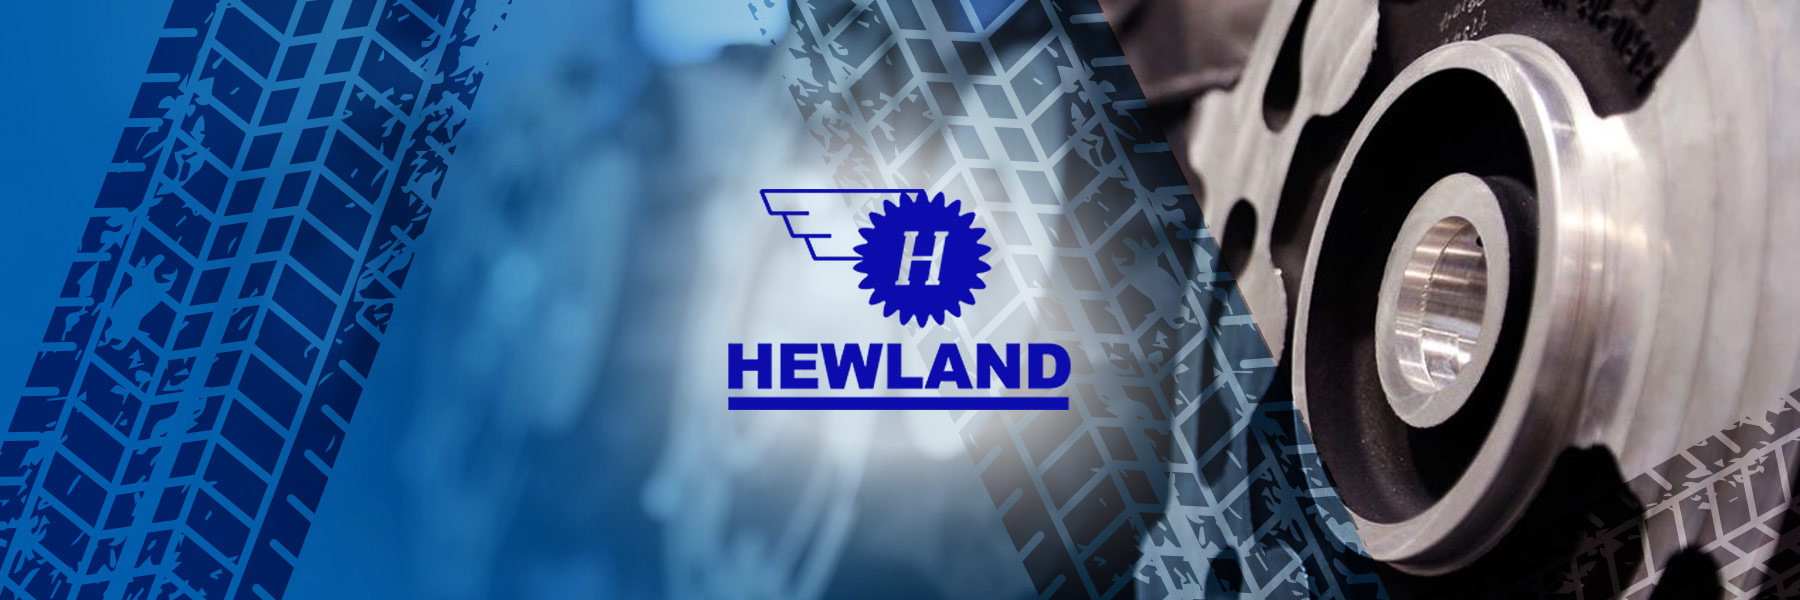 Hewland Engineering